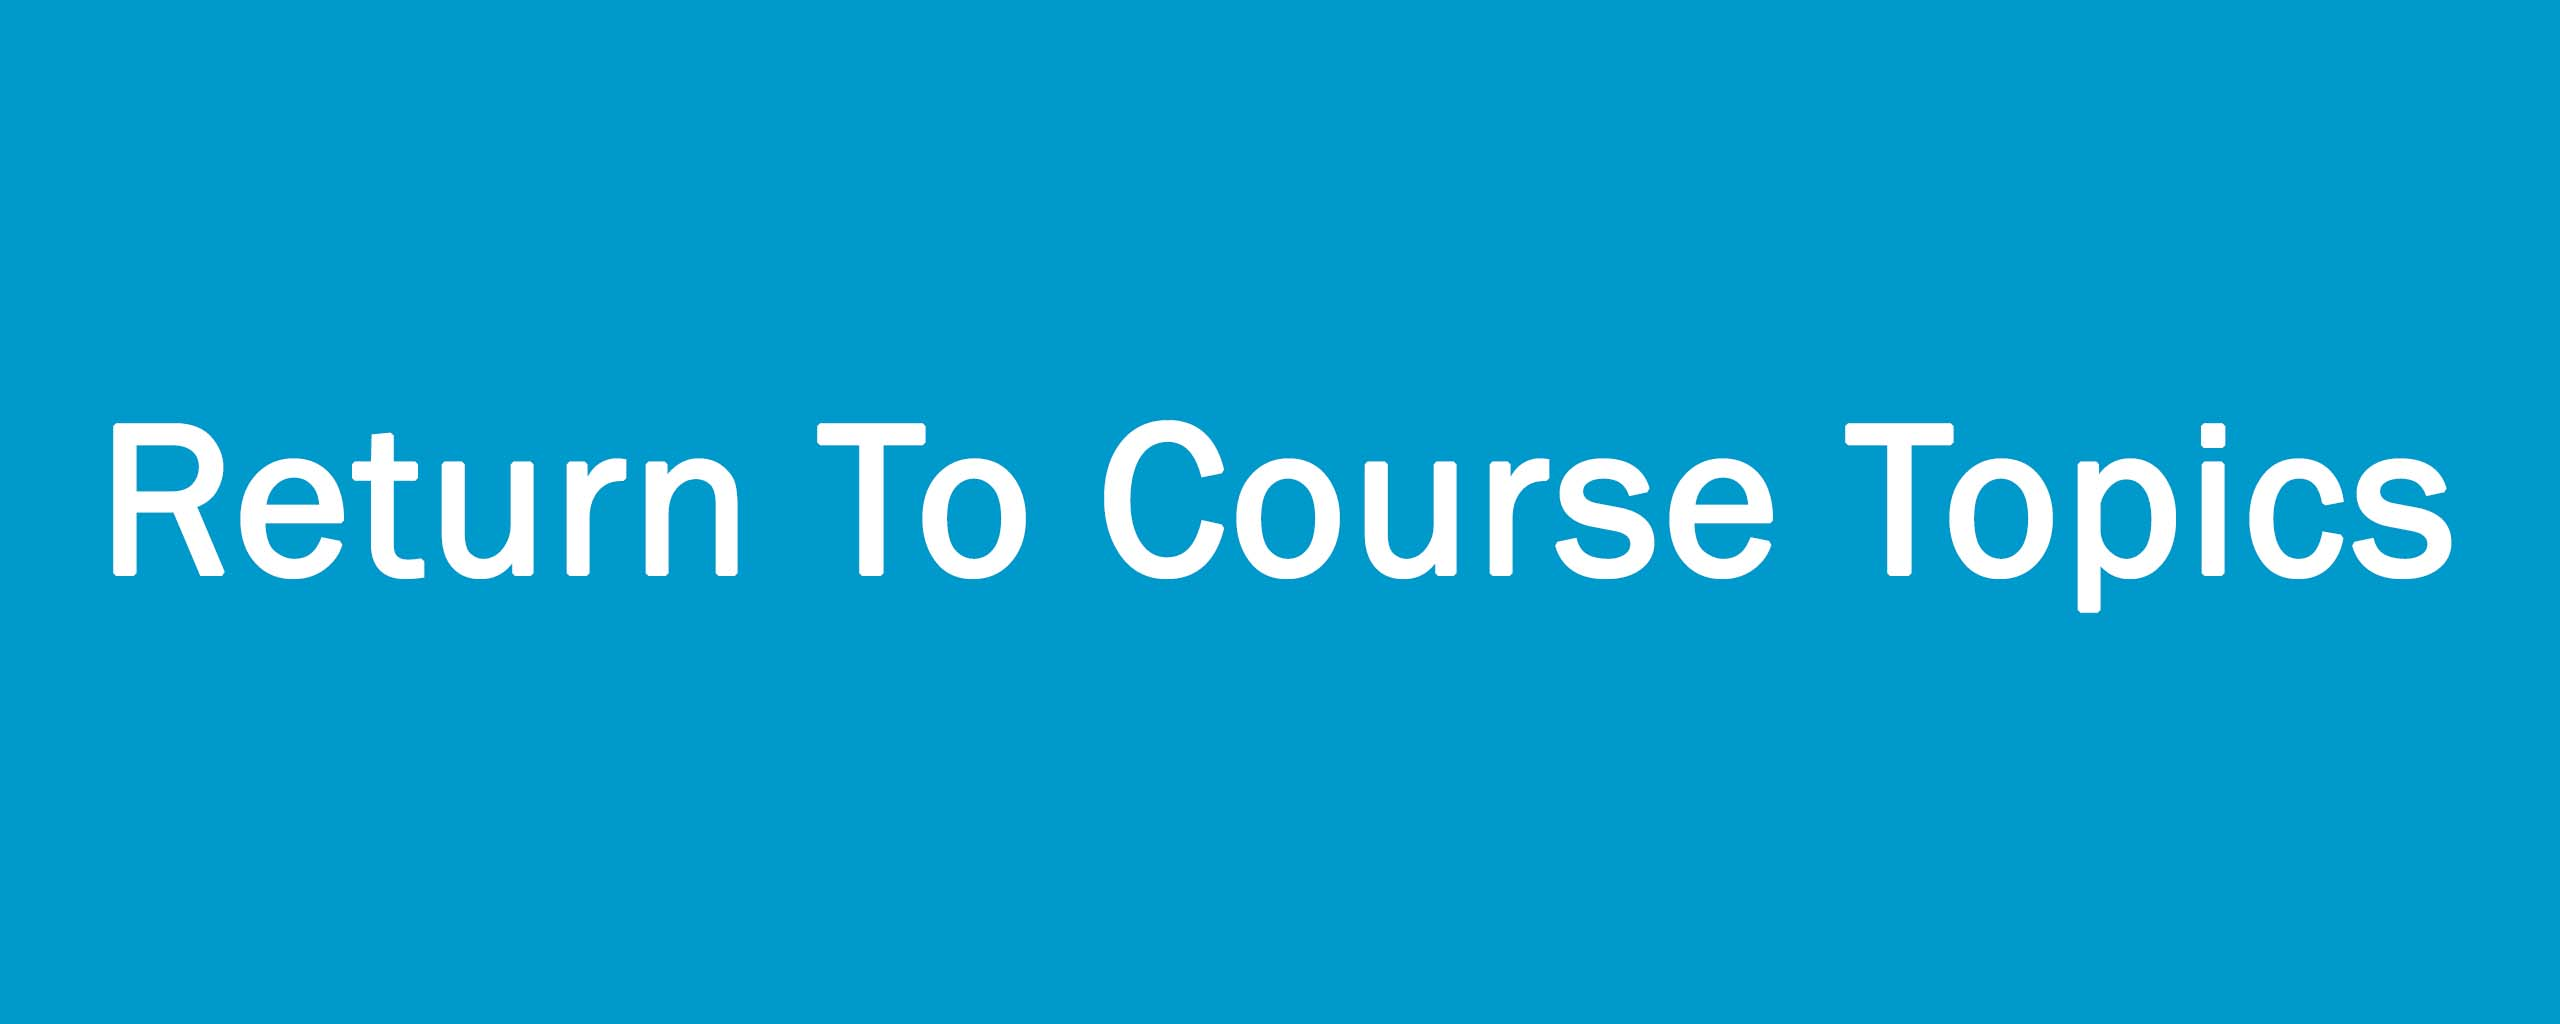 Return to course topics